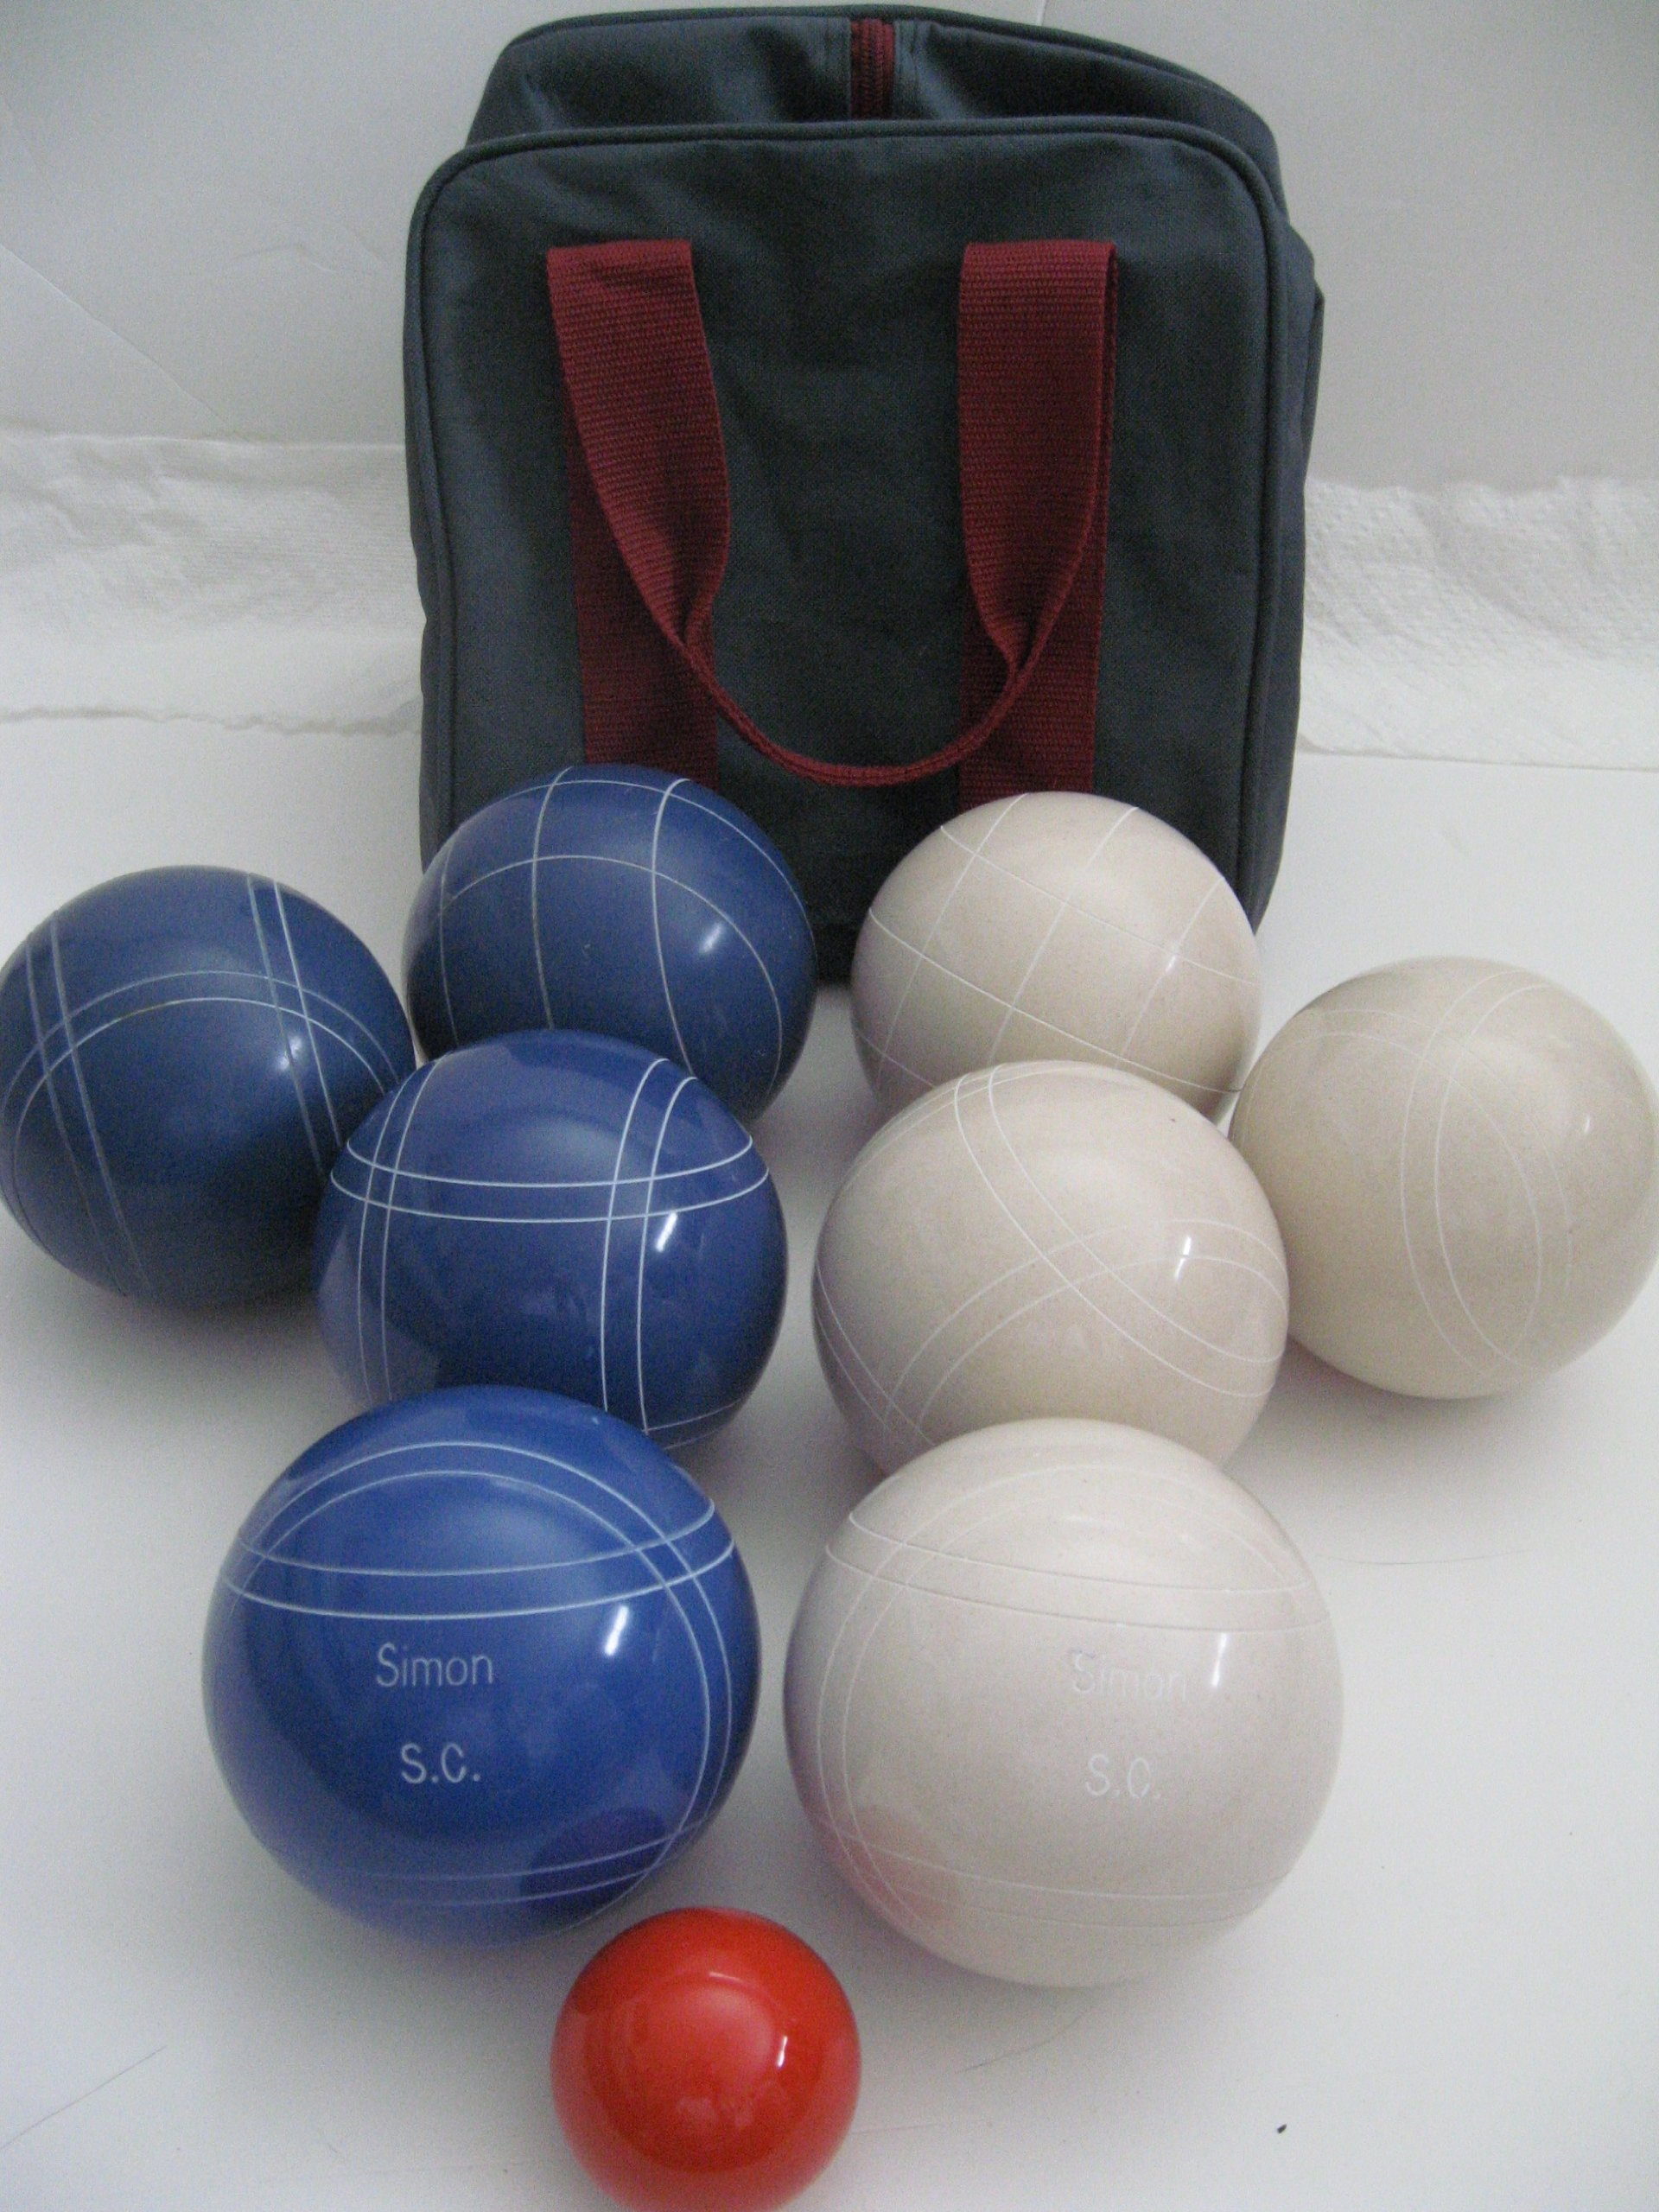 Premium Quality Engraved Bocce Package - 110mm Epco White and Blue Balls with Engraving [Misc.] by Epco